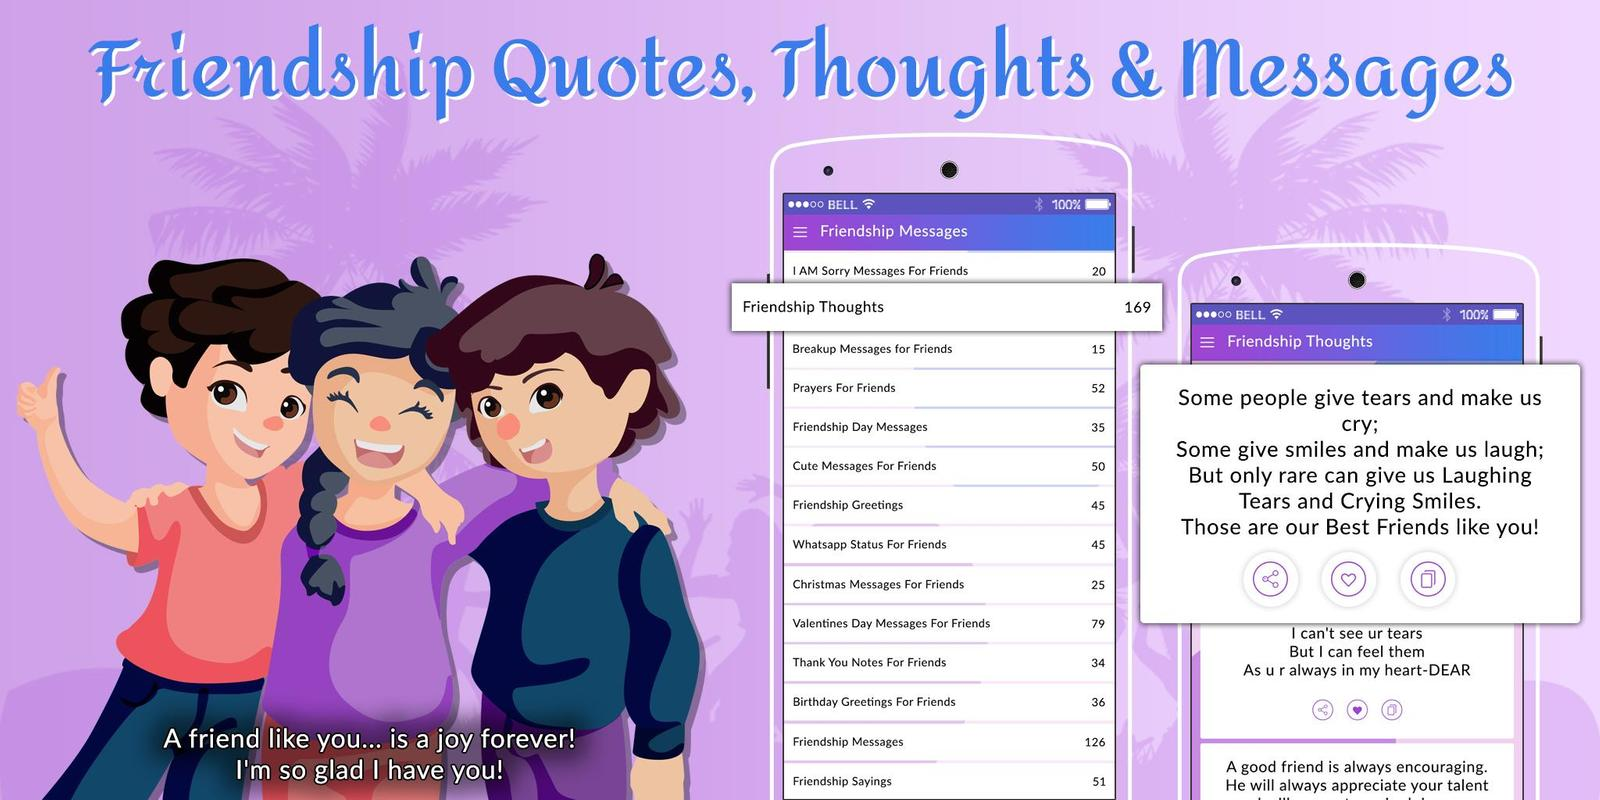 Friendship Quotes Thoughts Messages For Android Apk Download